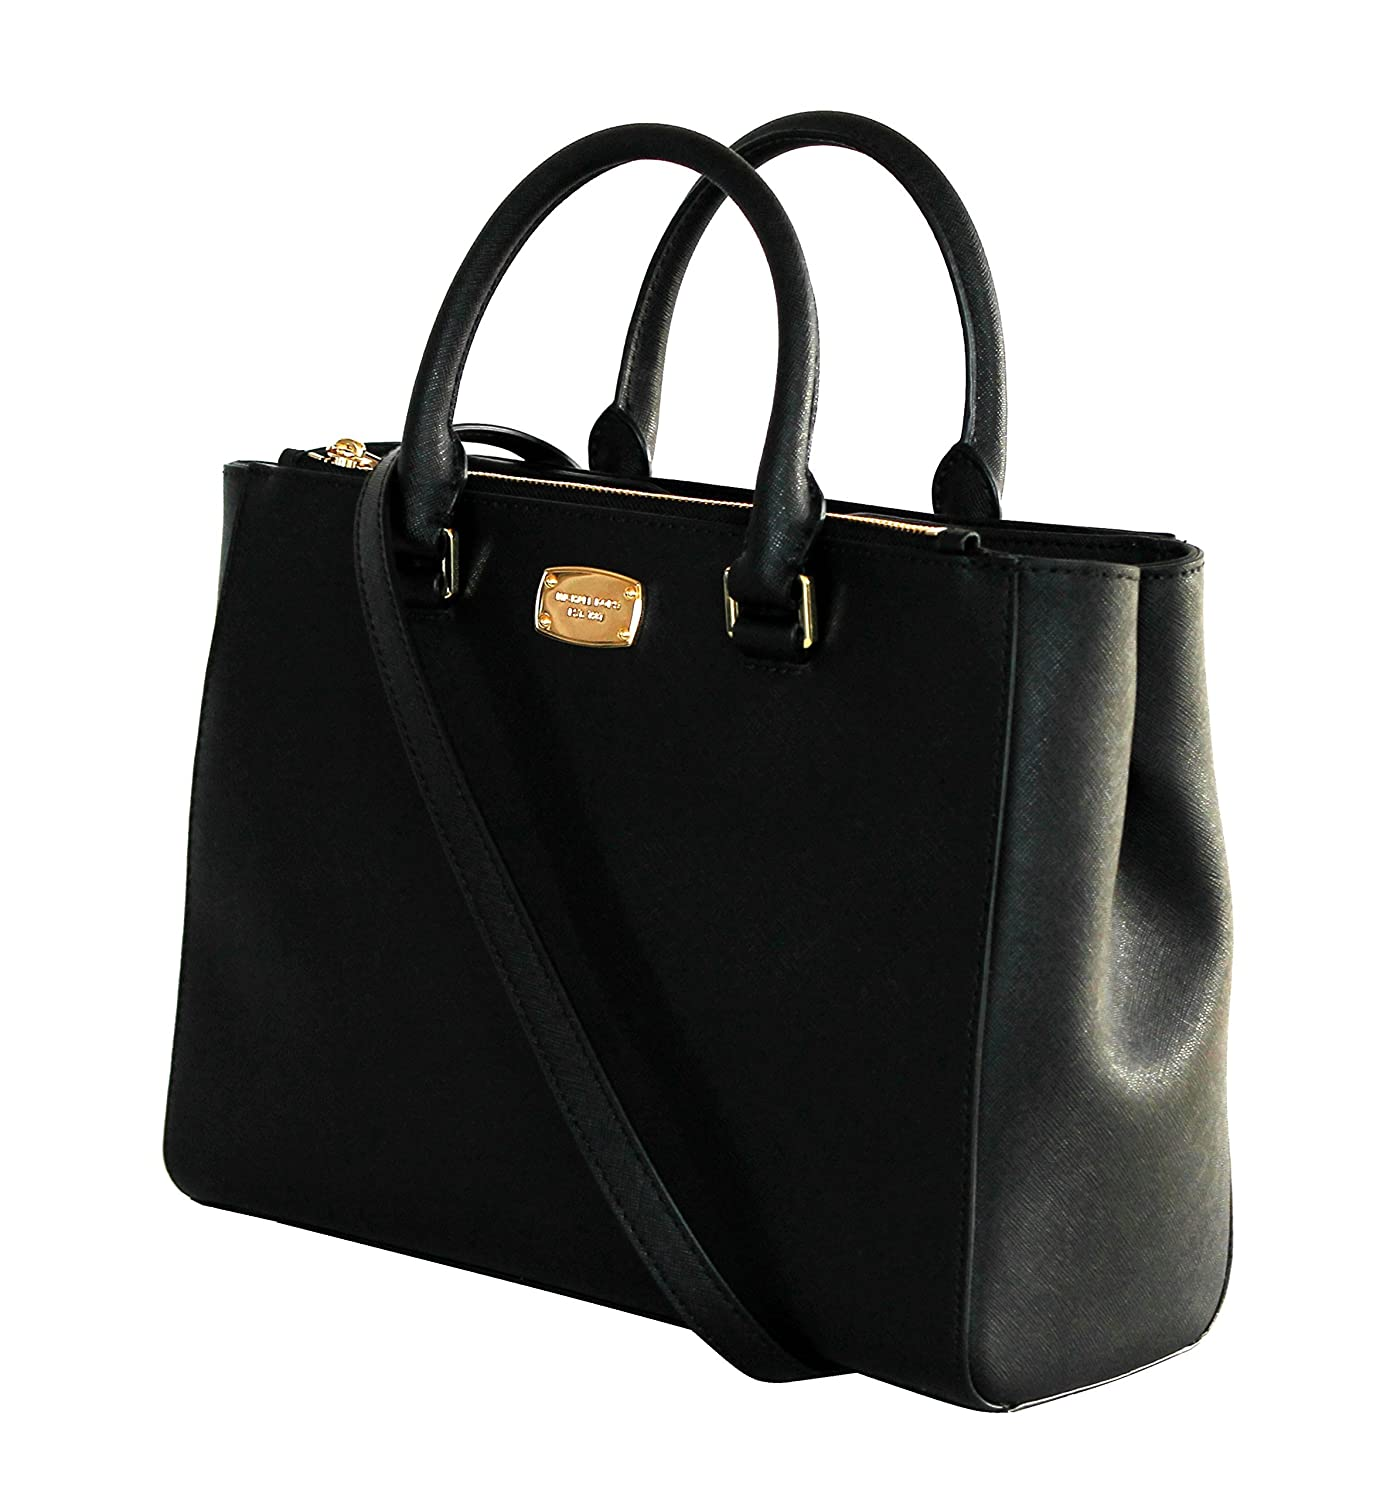 MICHAEL KORS WOMENS KELLEN MEDIUM SATCHEL LEATHER Shoulder Handbags  (BLACK): Handbags: Amazon.com